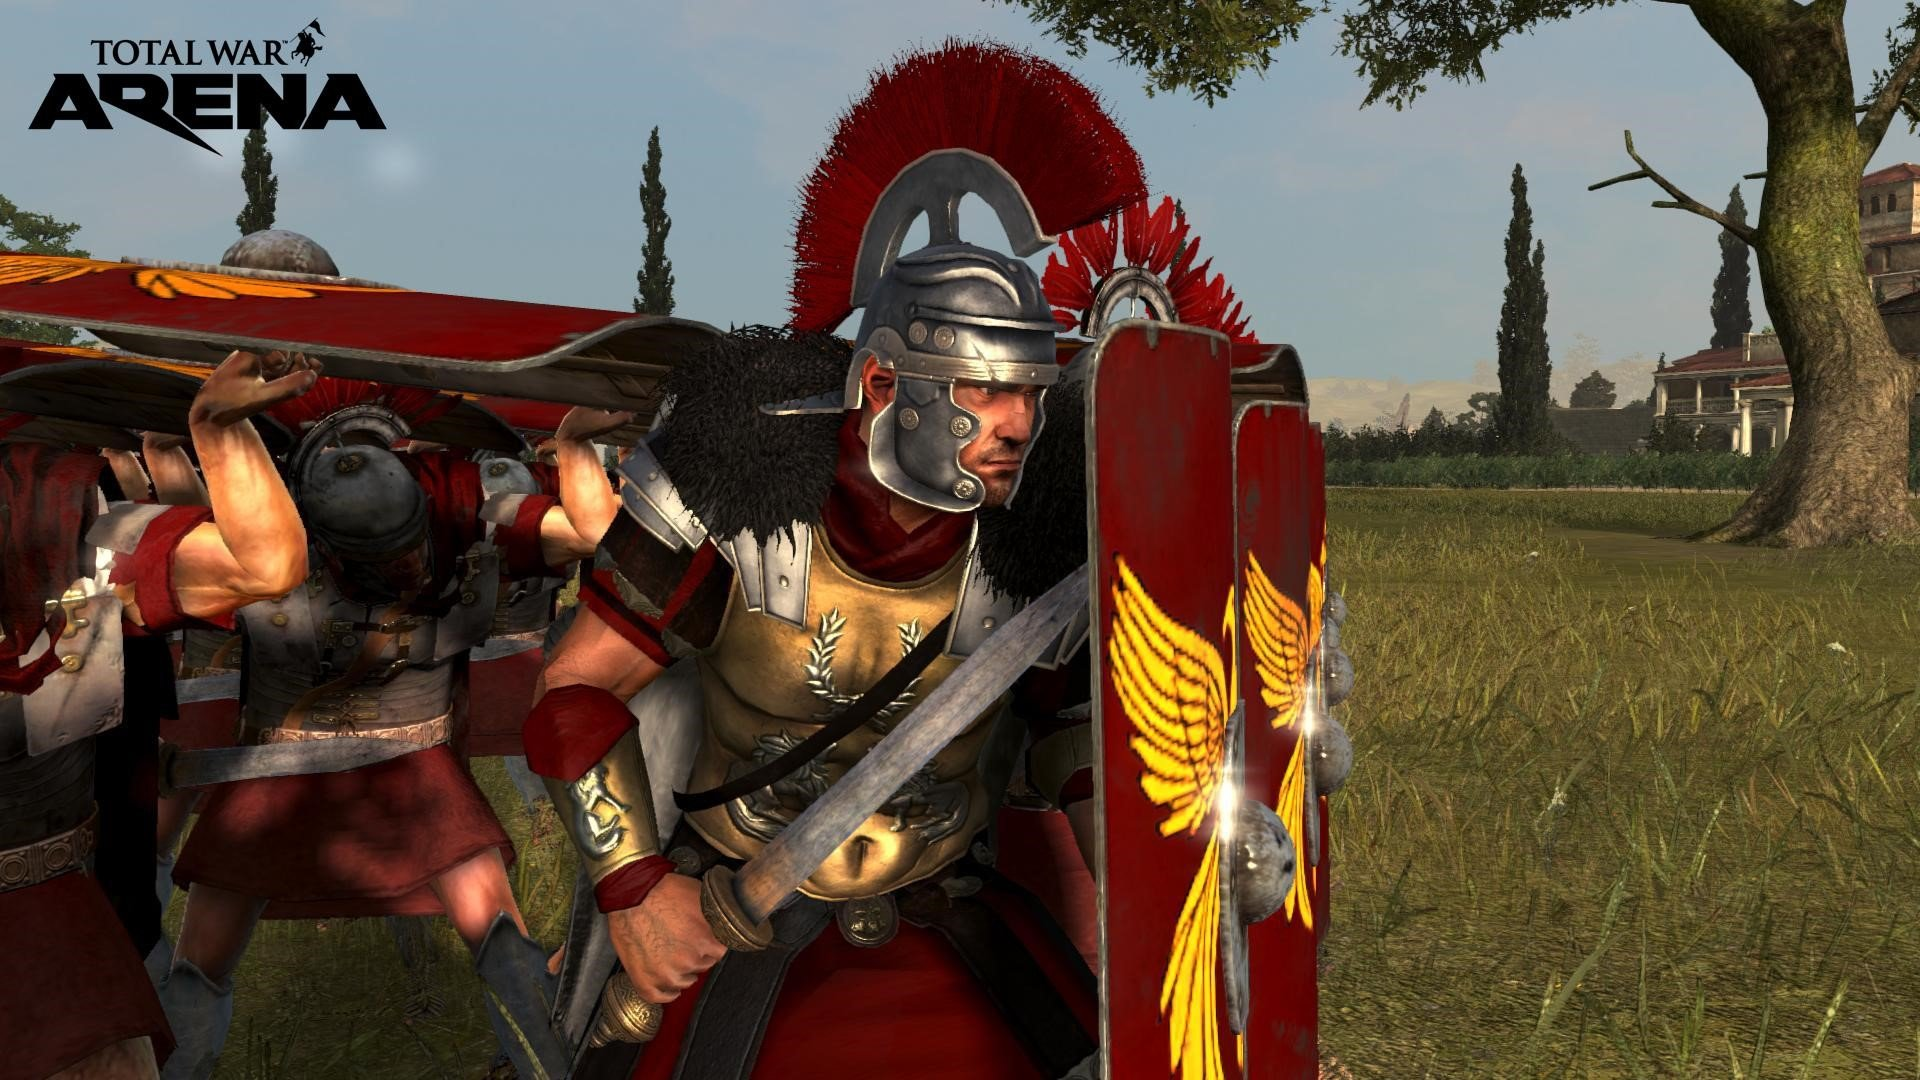 Total War Arena free to play